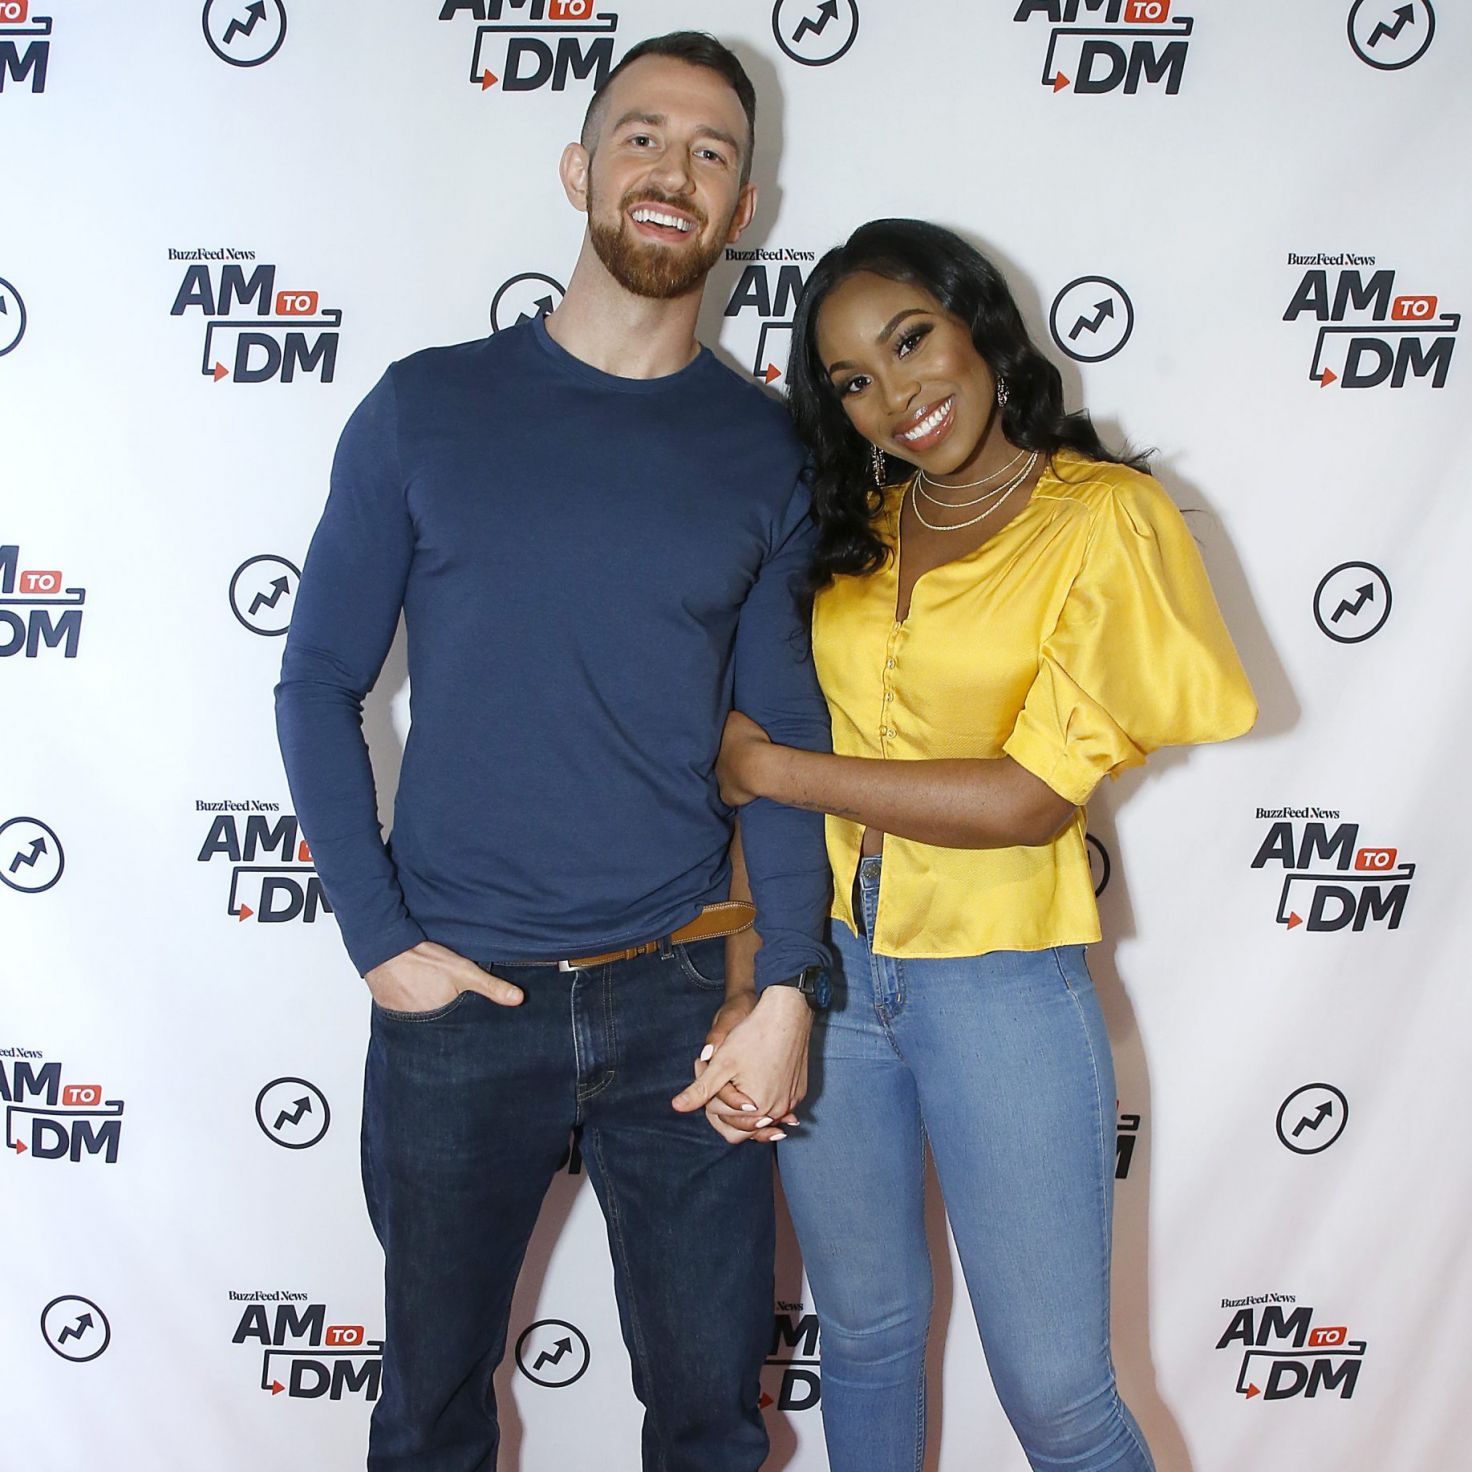 'Love Is Blind's' Lauren And Cameron, Lena Waithe And More Celebs Out And About